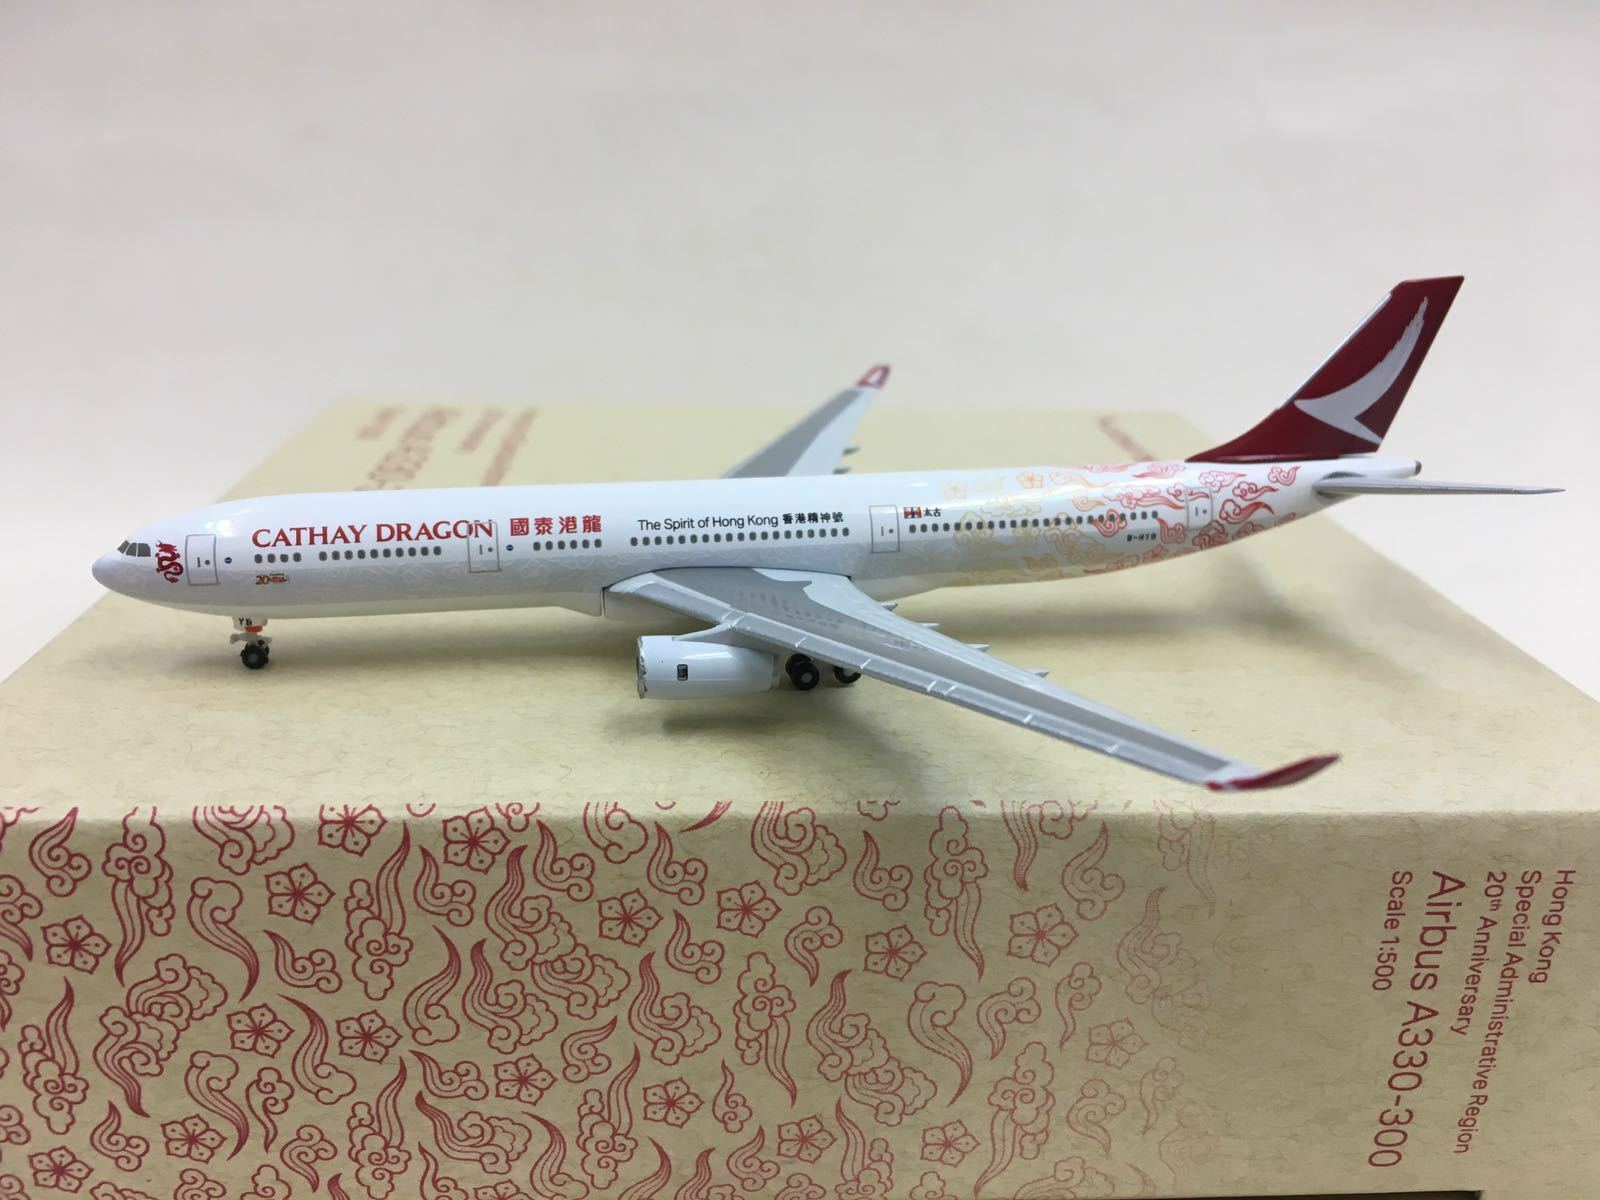 HOGAN Herpa scale 1 500 Cathay Dragon AIRBUS A330 B-HYB HKSAR 20th Anniversary